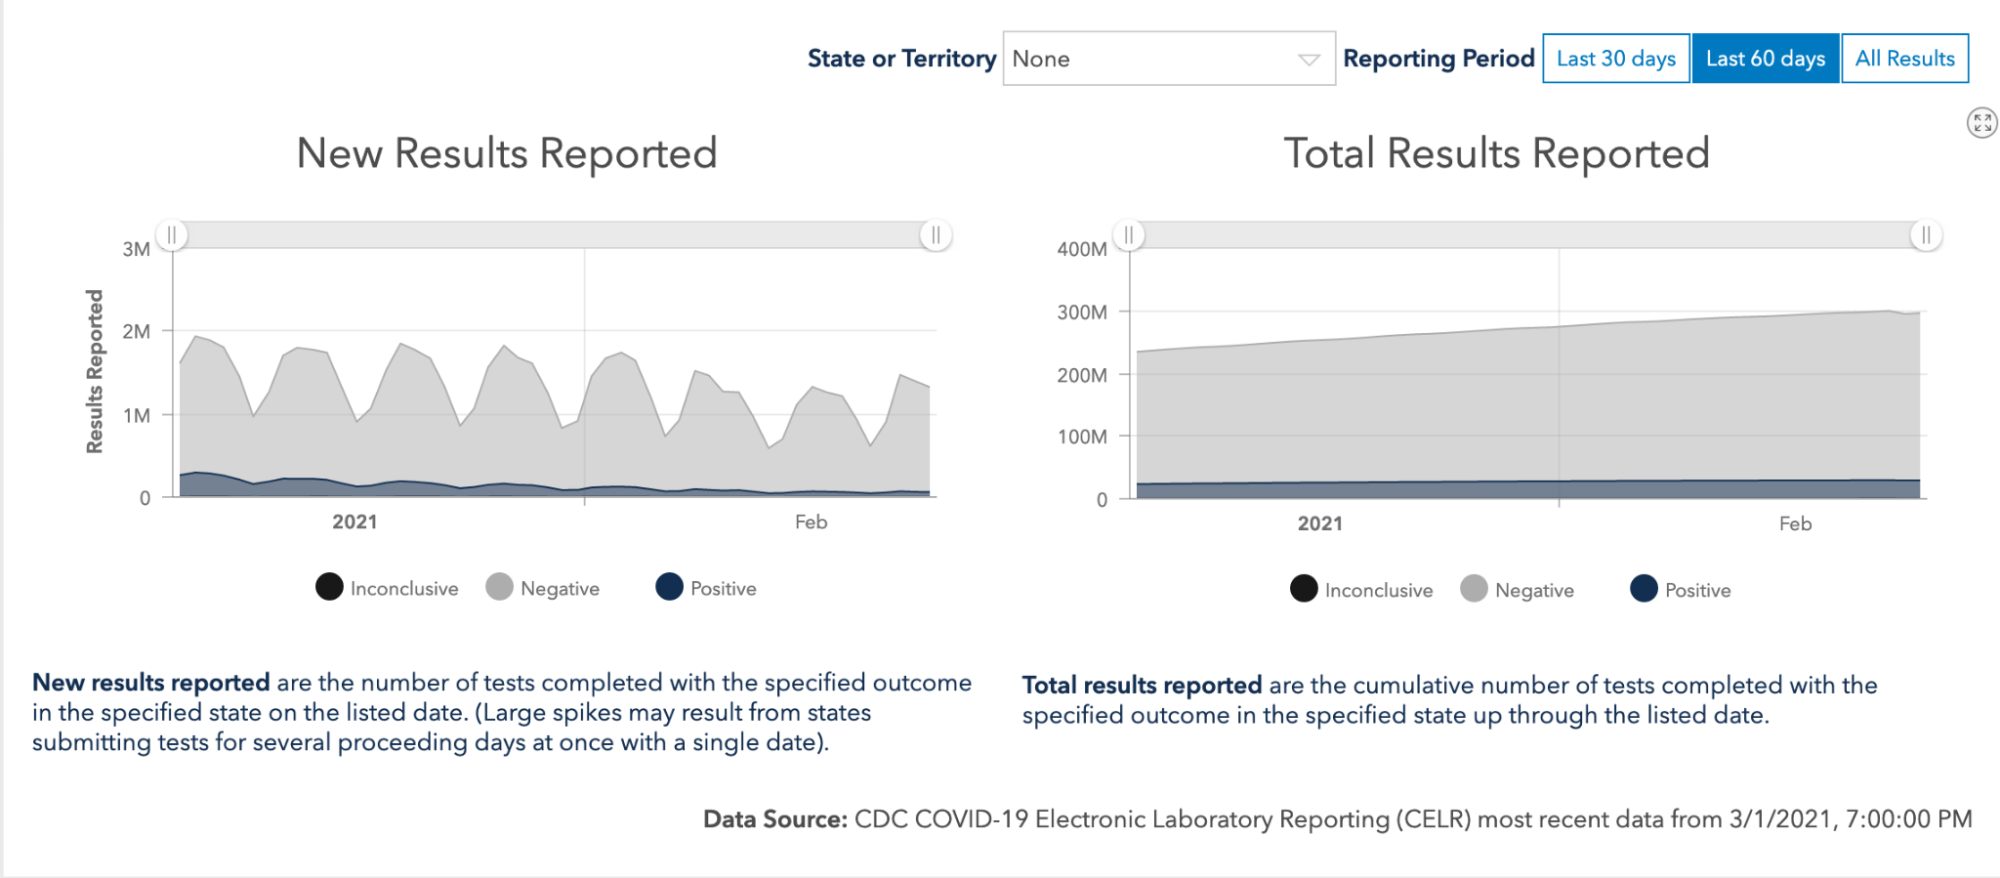 Two graphs showing US COVID-19 inconclusive, negative, and positive test results over time for the last 60 days, covering January and February 2021. The graph on the left shows new test results reported and shows significant peaks and valleys over time ranging between about 2 million and 1 million new tests per day. The graph on the right shows a slight increase over time, beginning at about 225 million total test results reported and peaking at about 300 million total tests reported.